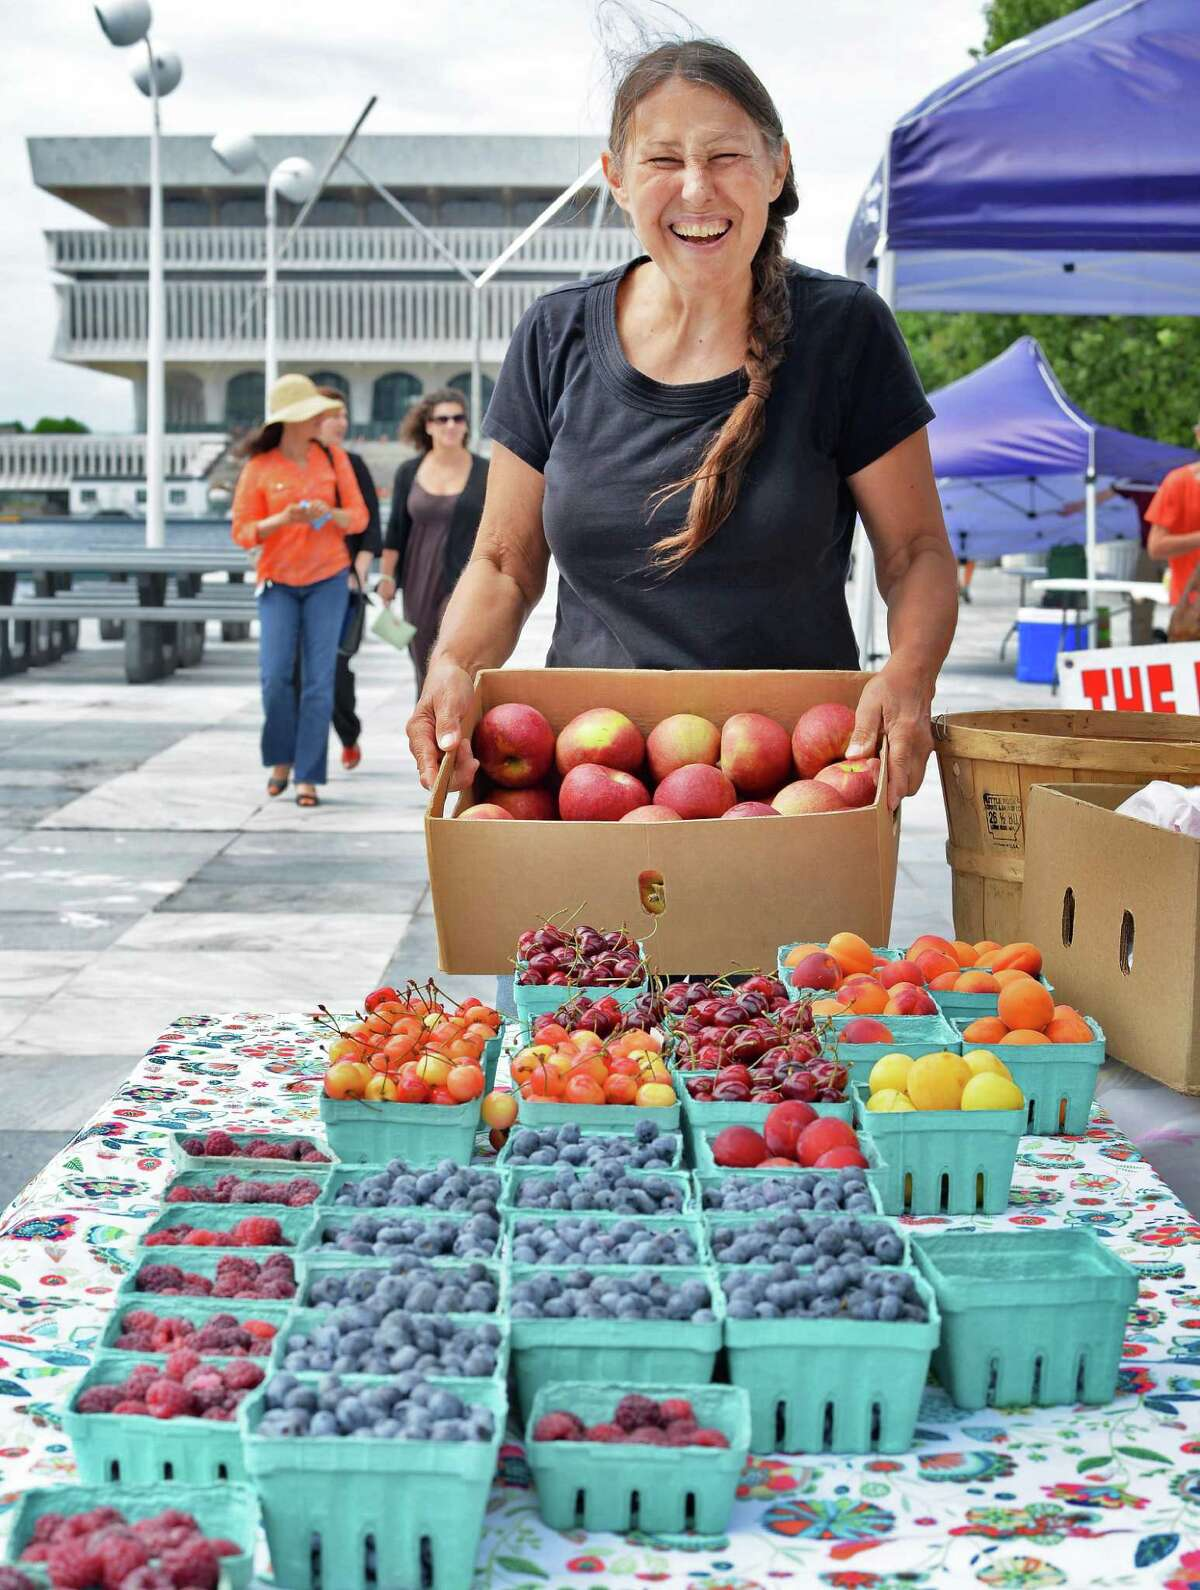 Farmer's Market. Local produce from farmers and other vendors. When: Friday, Oct. 16, 10 a.m. - 2 p.m. Where: Empire State Plaza, Albany. For more info, visit the website.